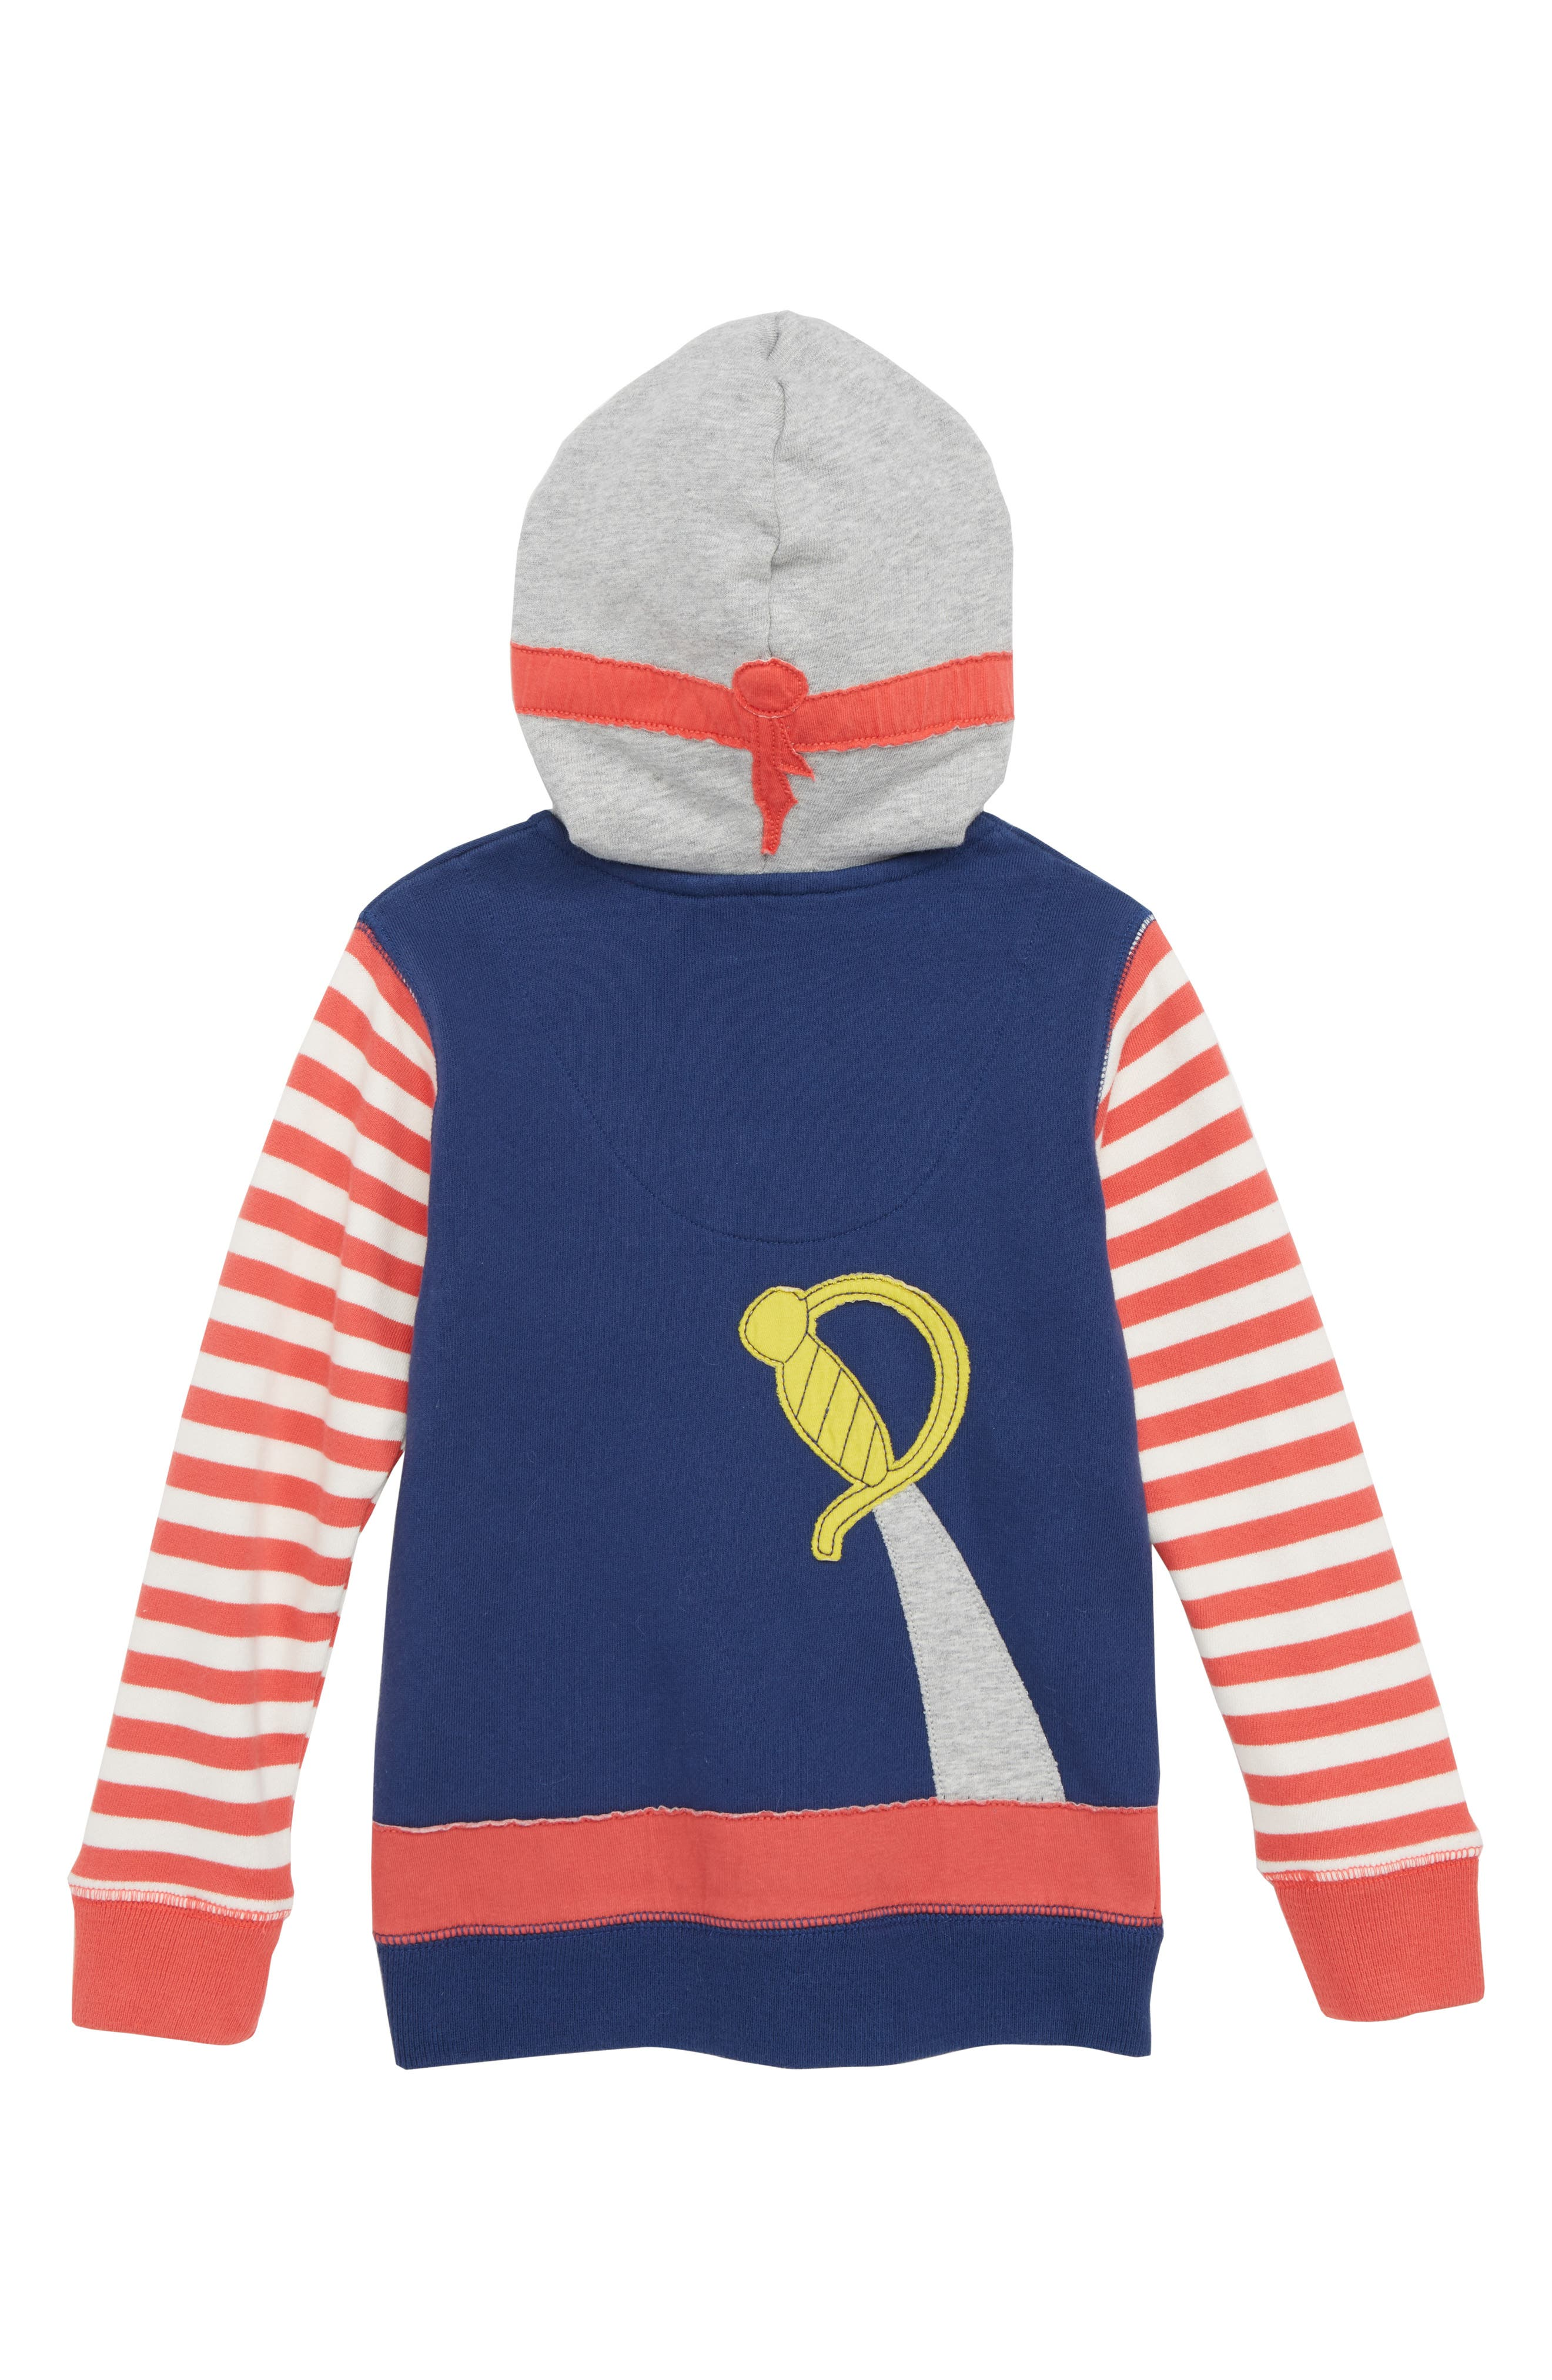 Novelty Pirate Hoodie,                             Alternate thumbnail 2, color,                             414